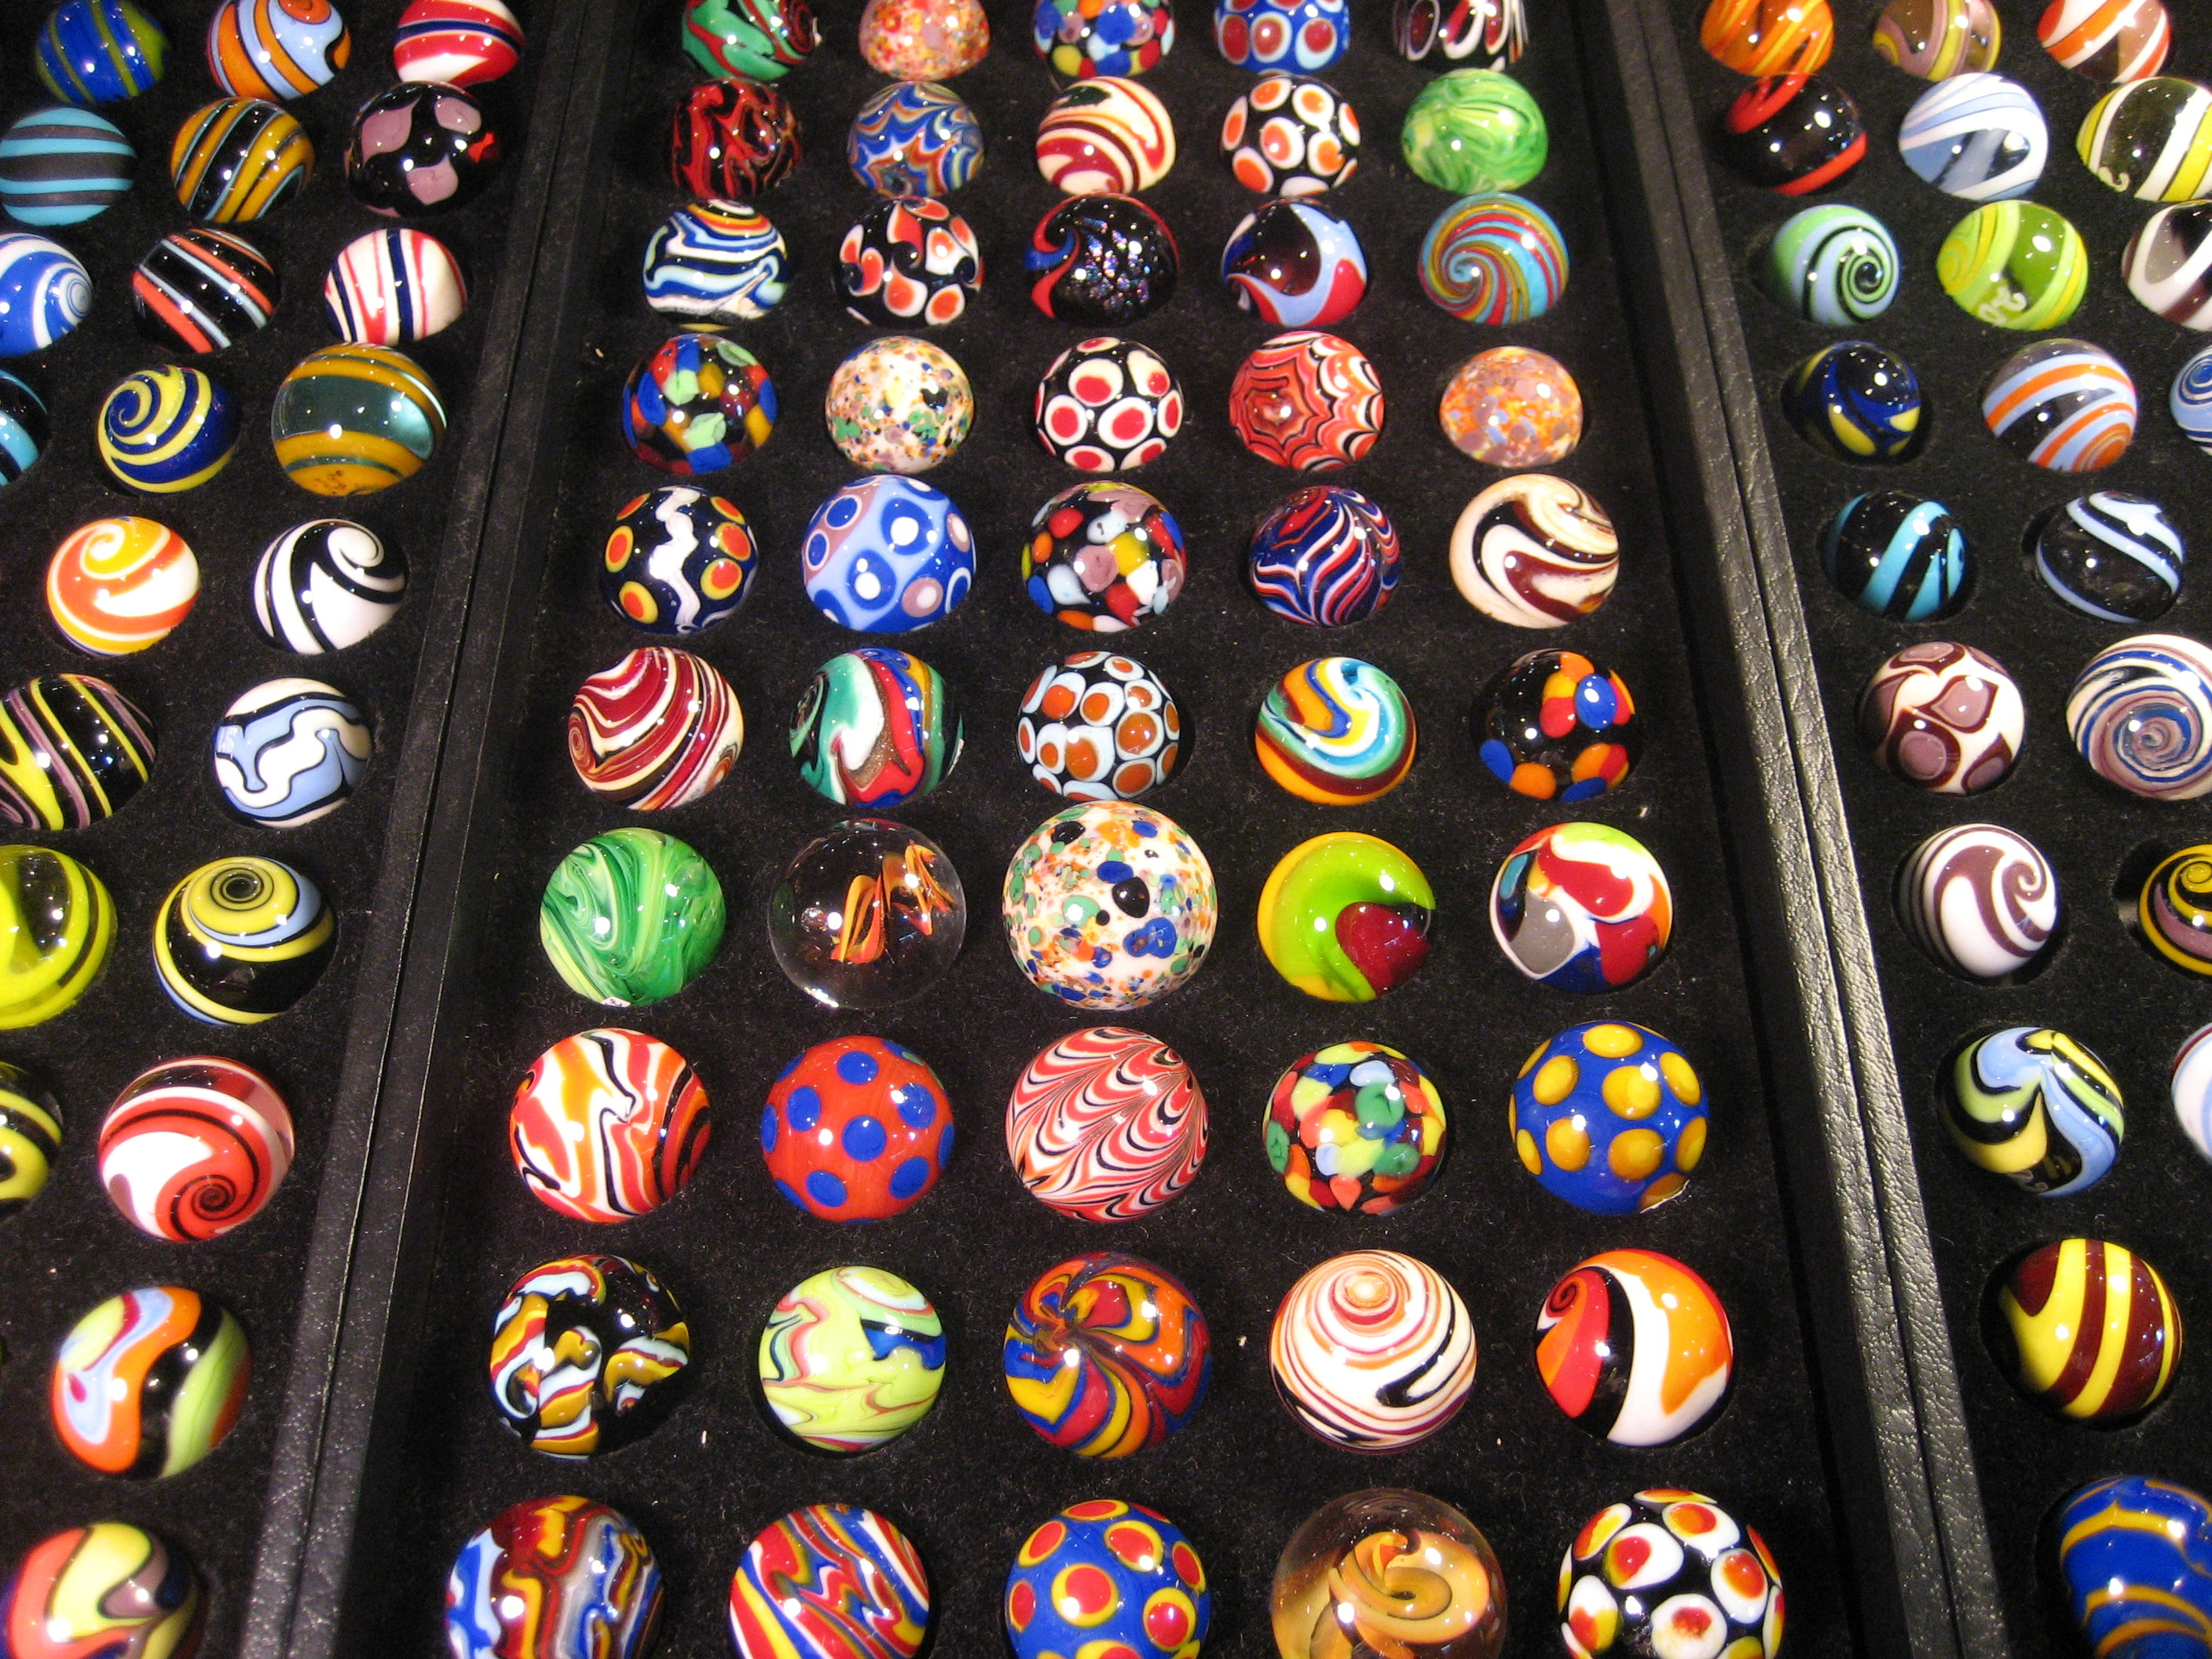 A display of marbles